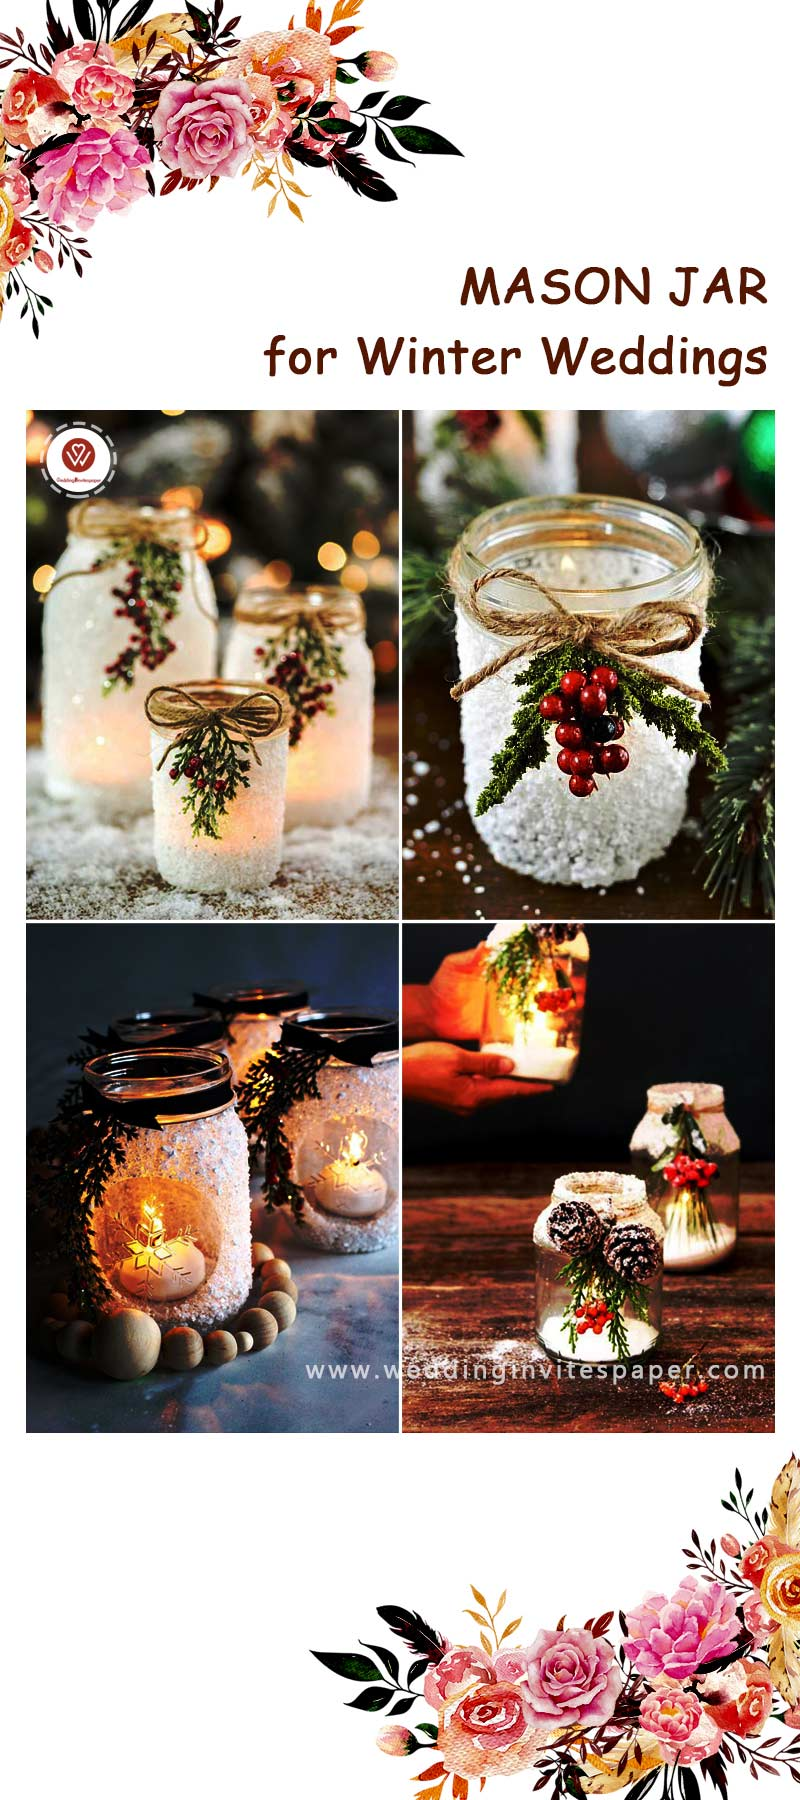 MASON-JAR-for-Winter-Weddings.jpg